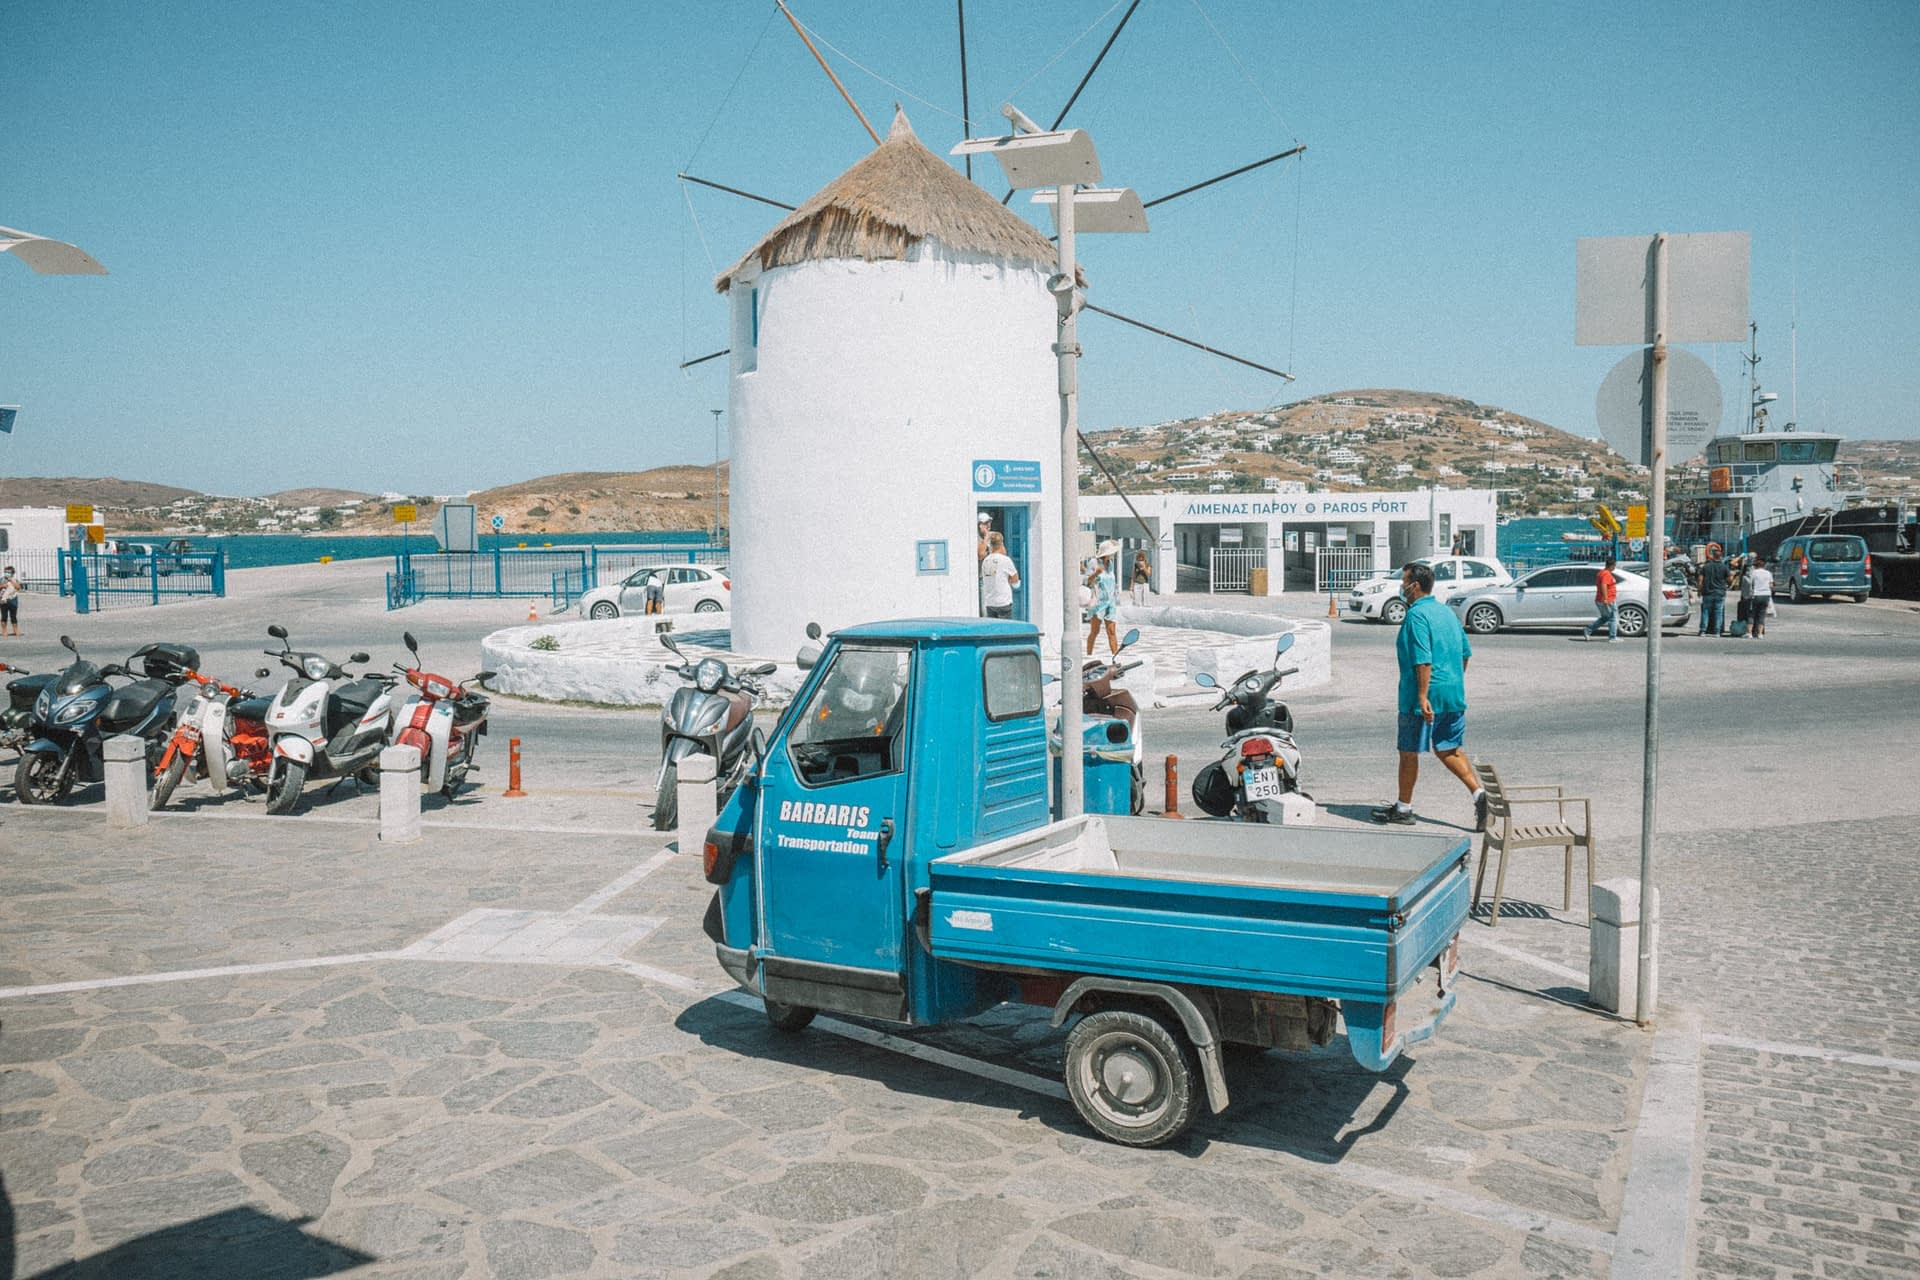 A three wheeled van in front of a windmill in Parakia, Paros. Things to do in Paros